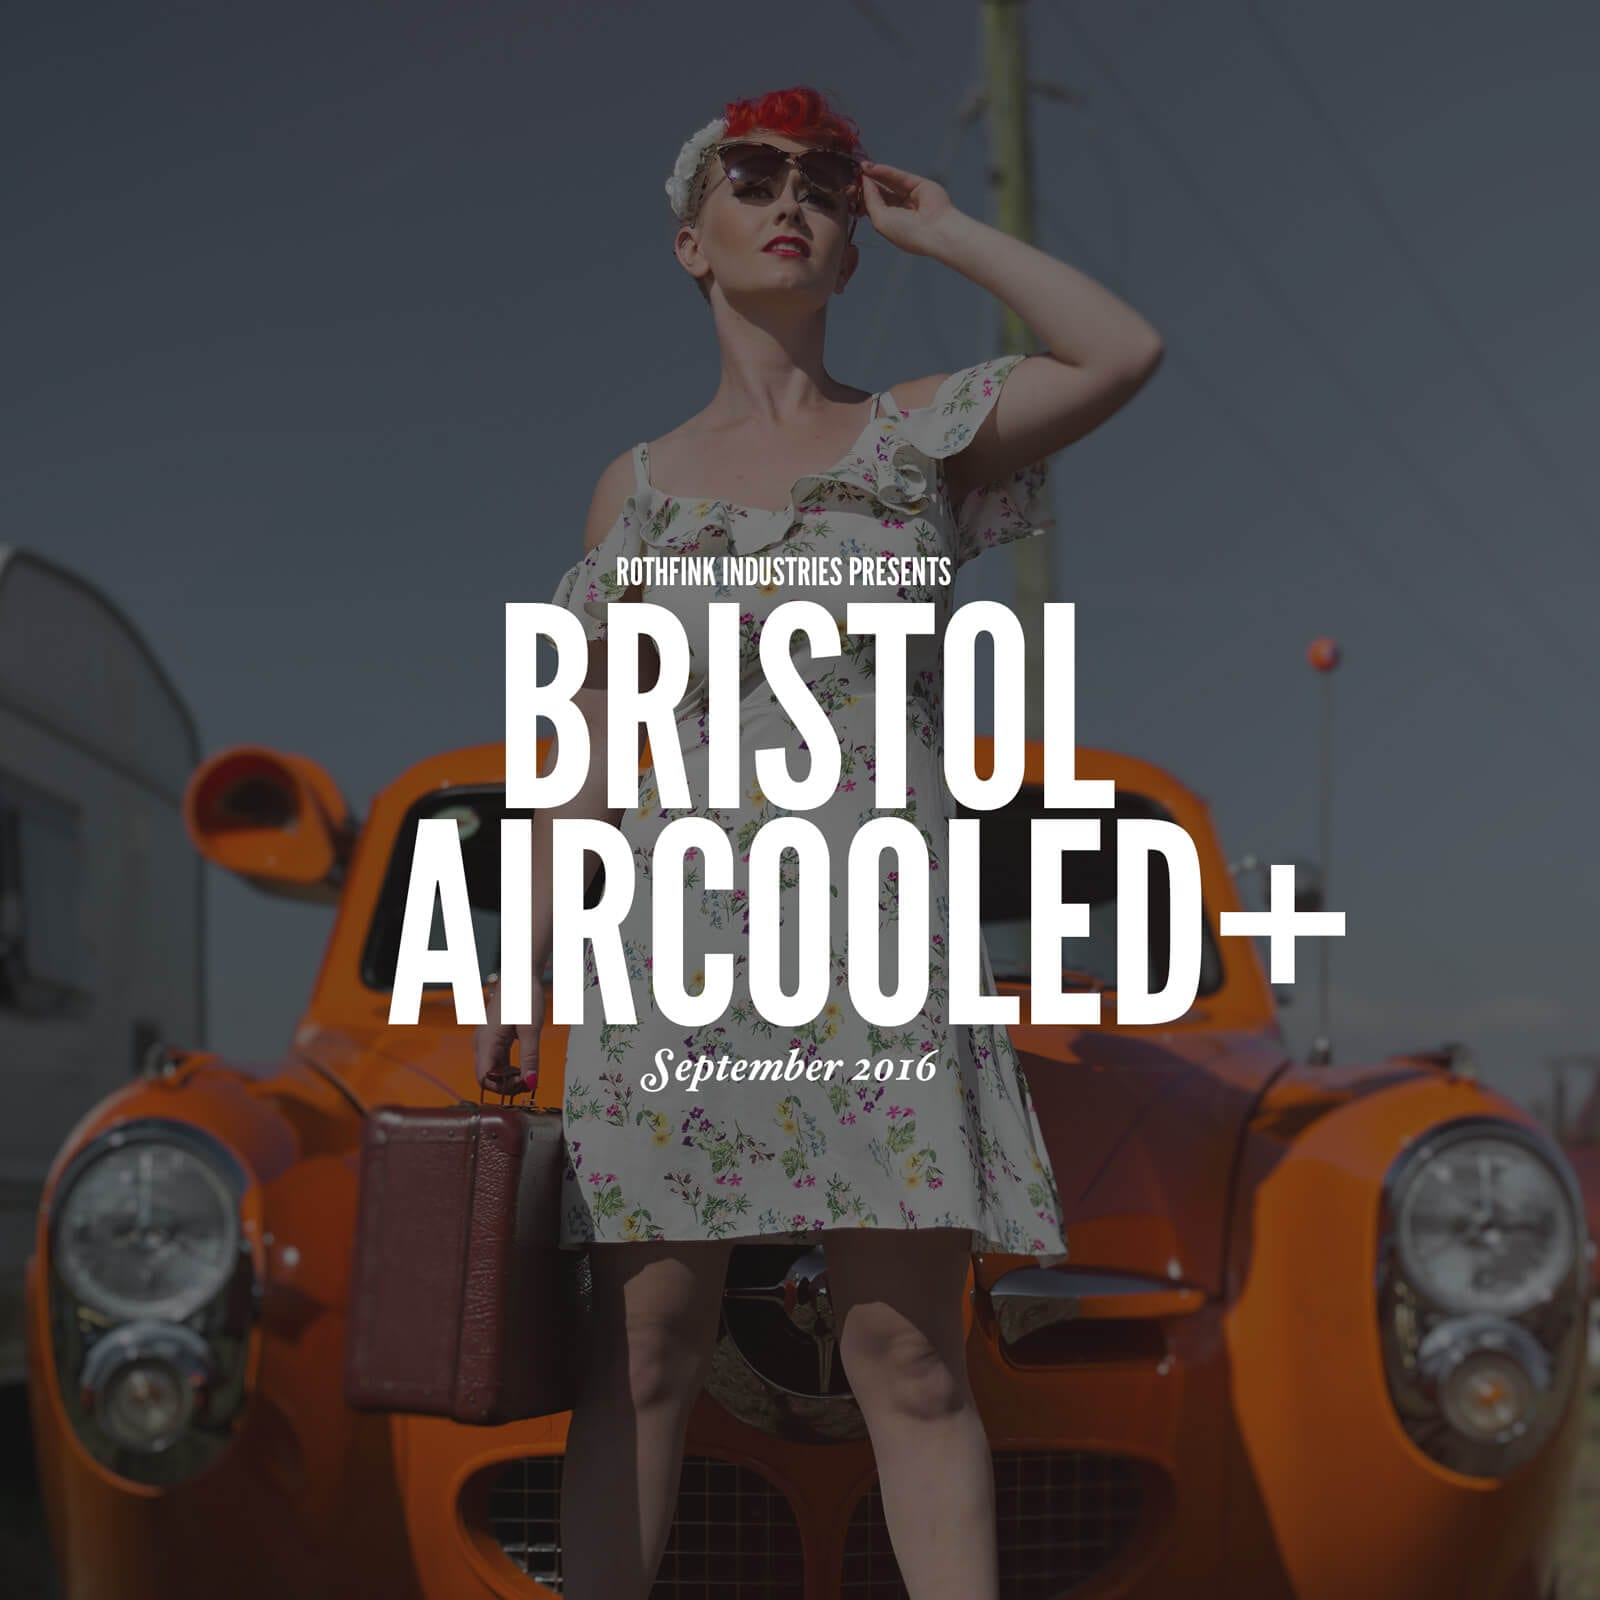 Bristol Aircooled Plus, September 2016